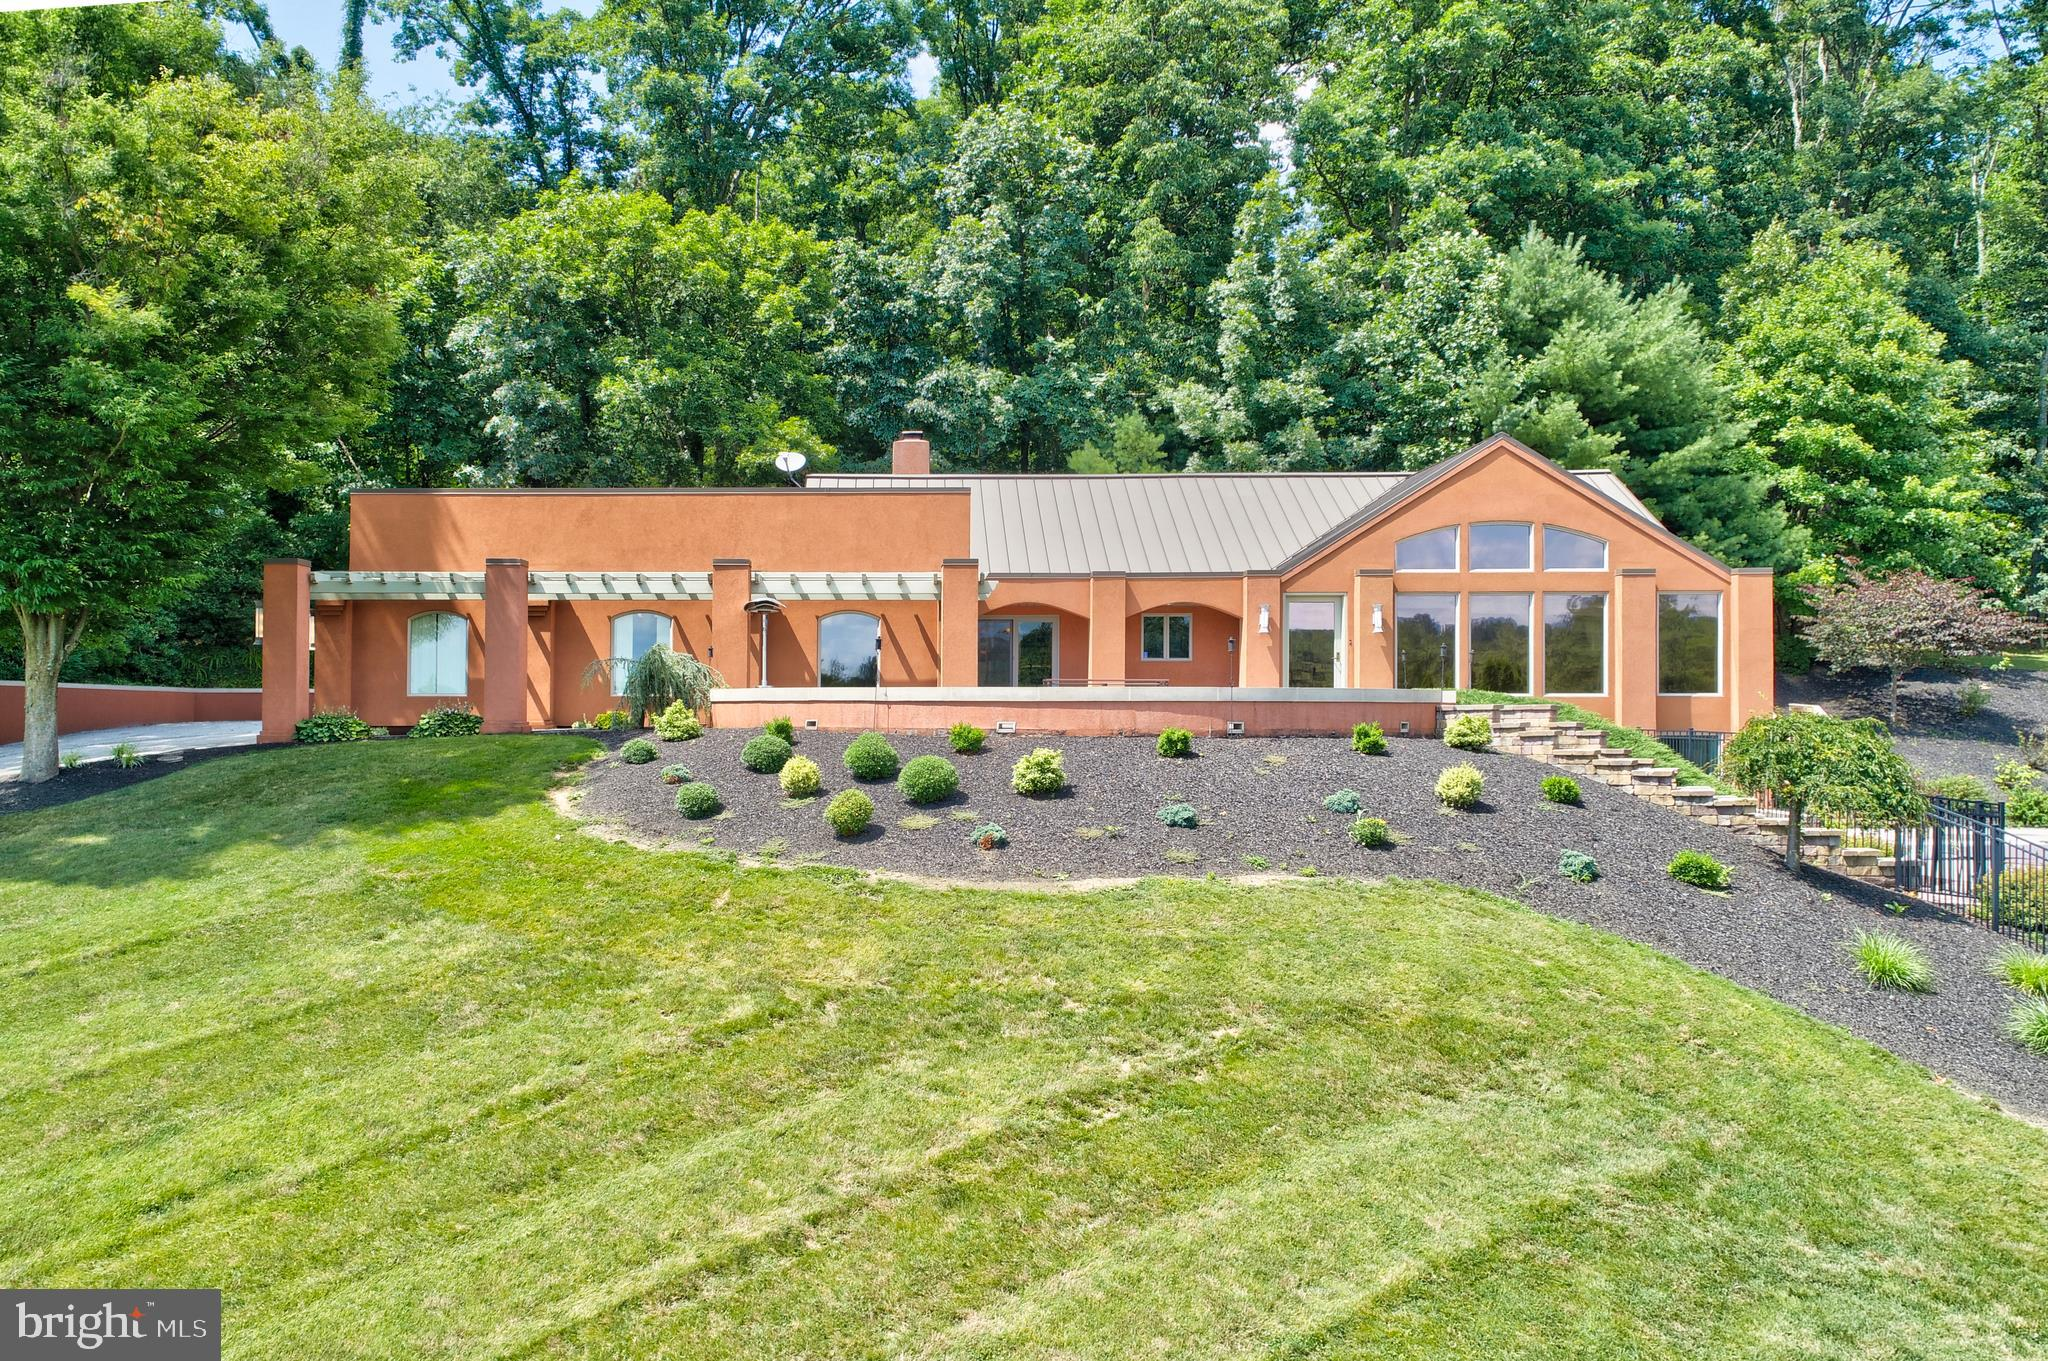 2095 YOUNGS ROAD, HANOVER, PA 17331